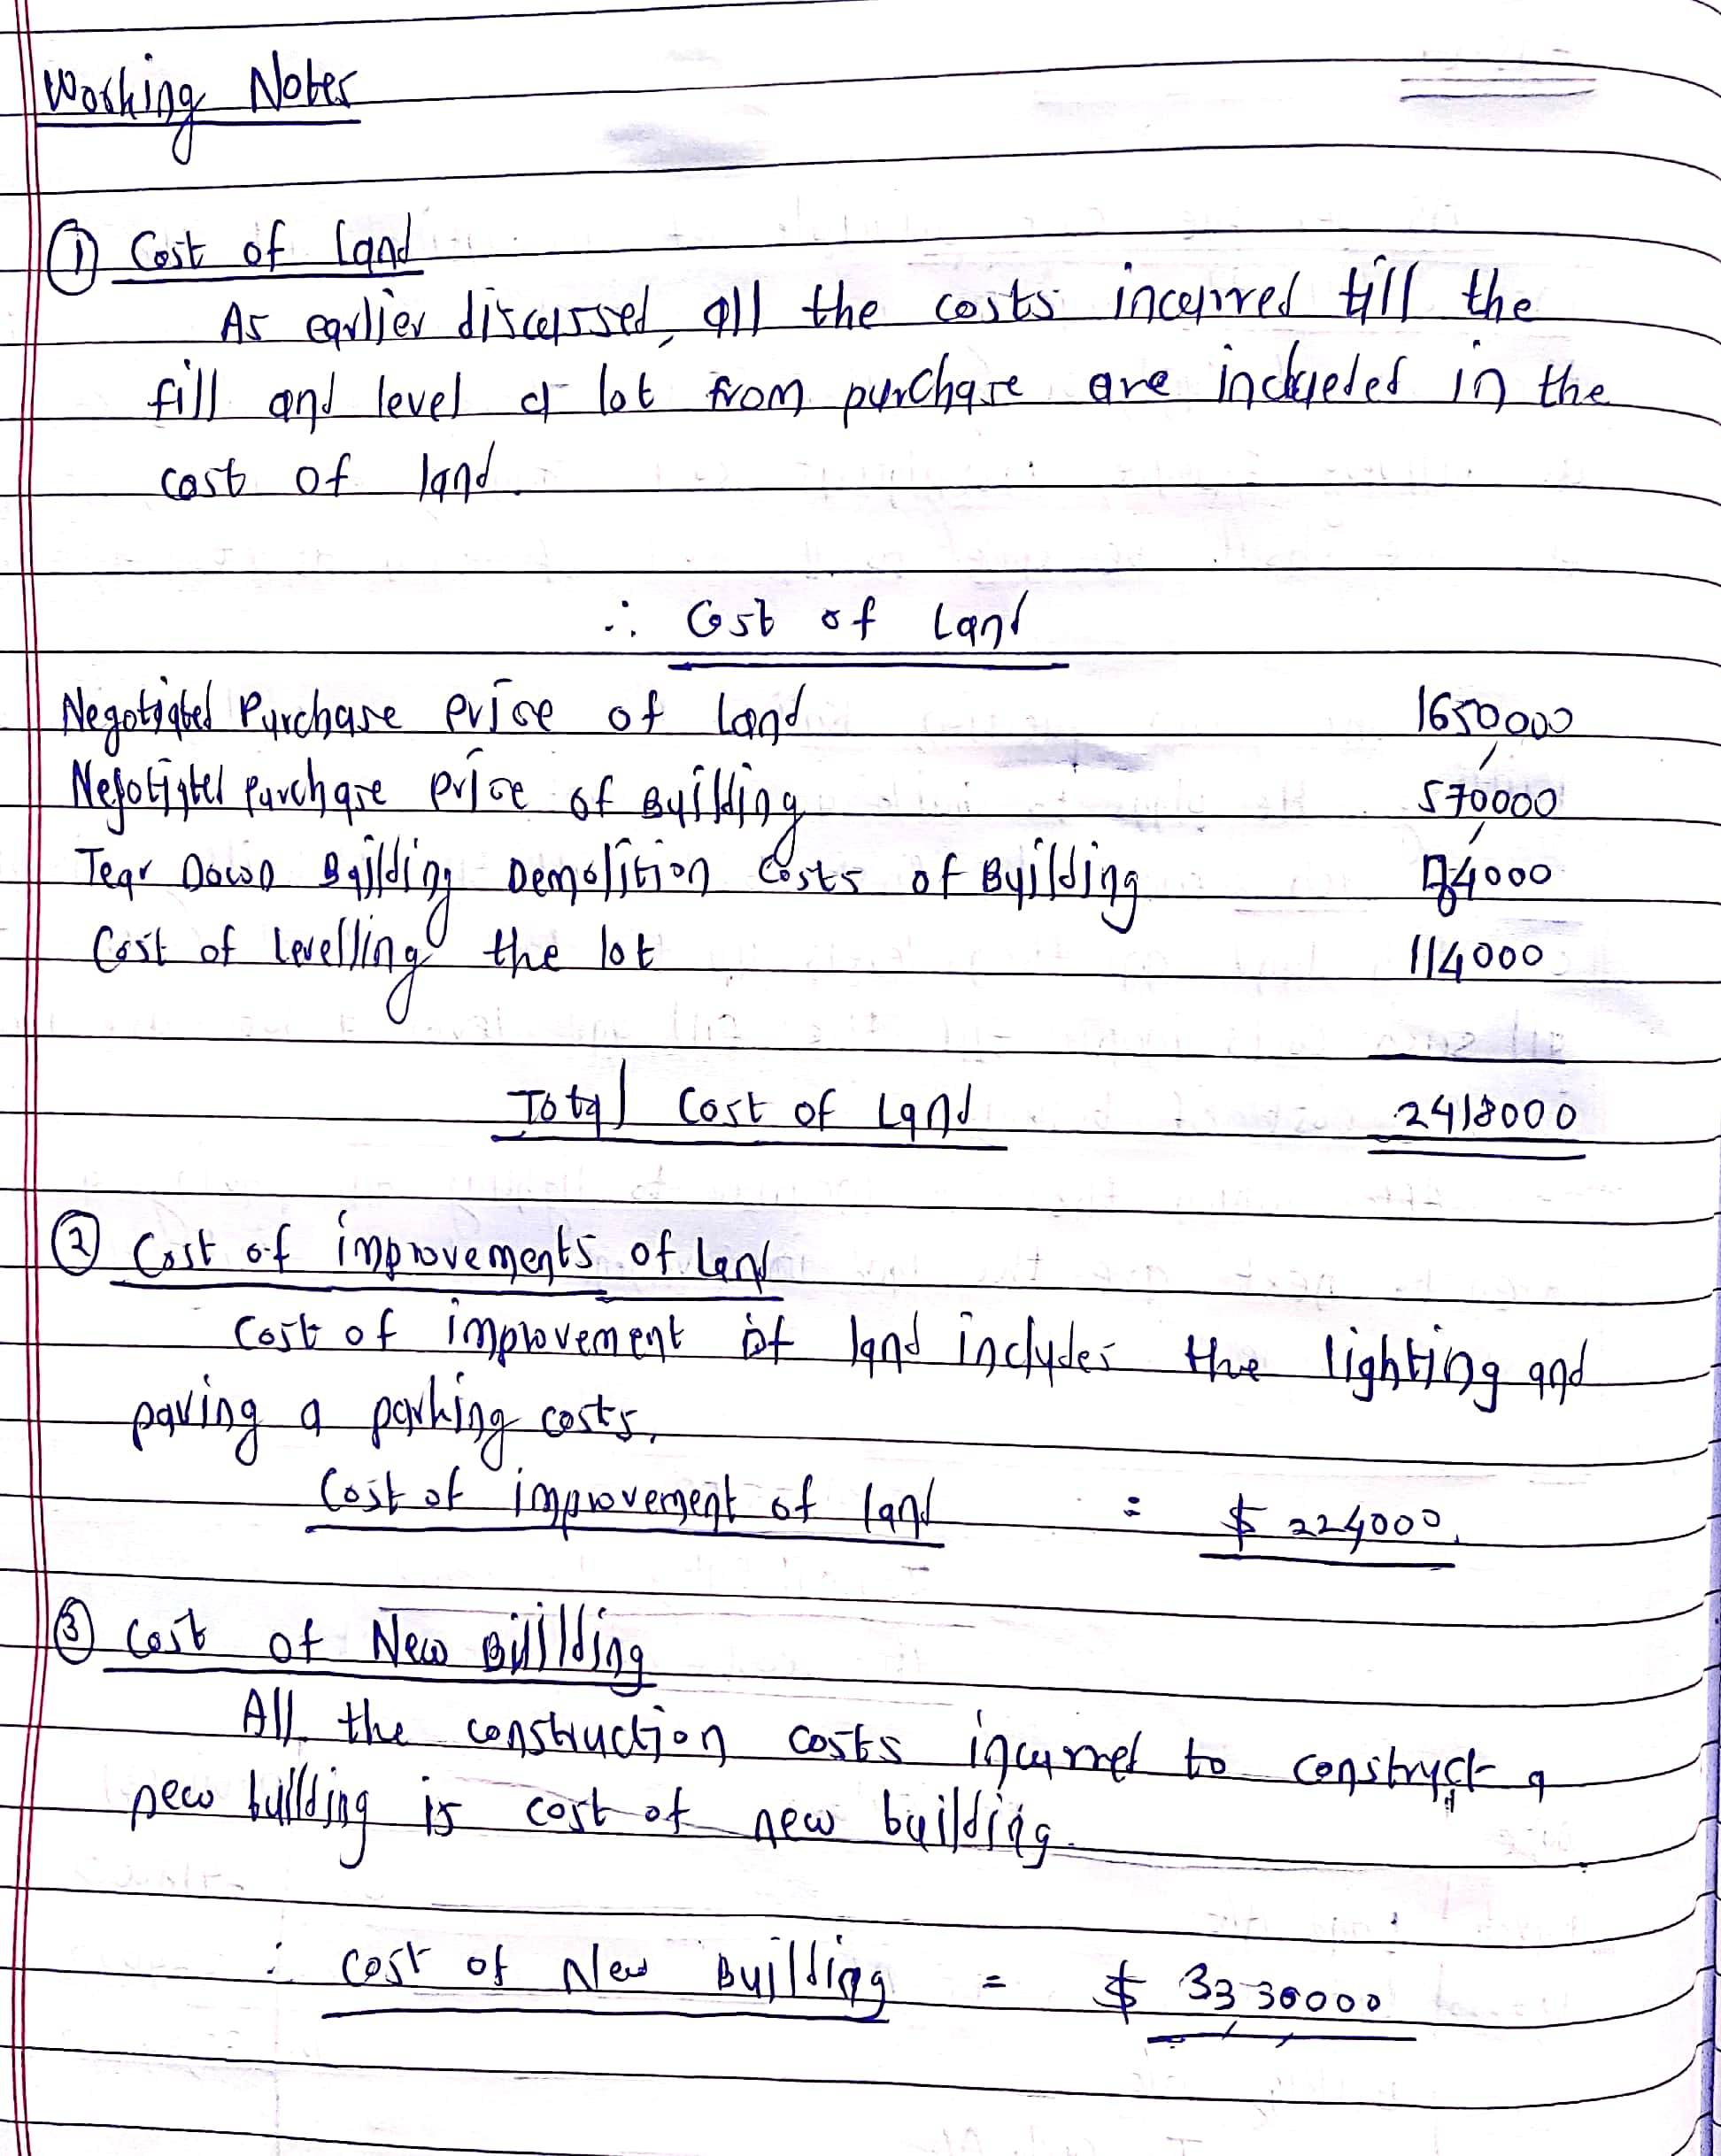 Chapter 9 Quiz Help Save Amp Exi Check After Planning To